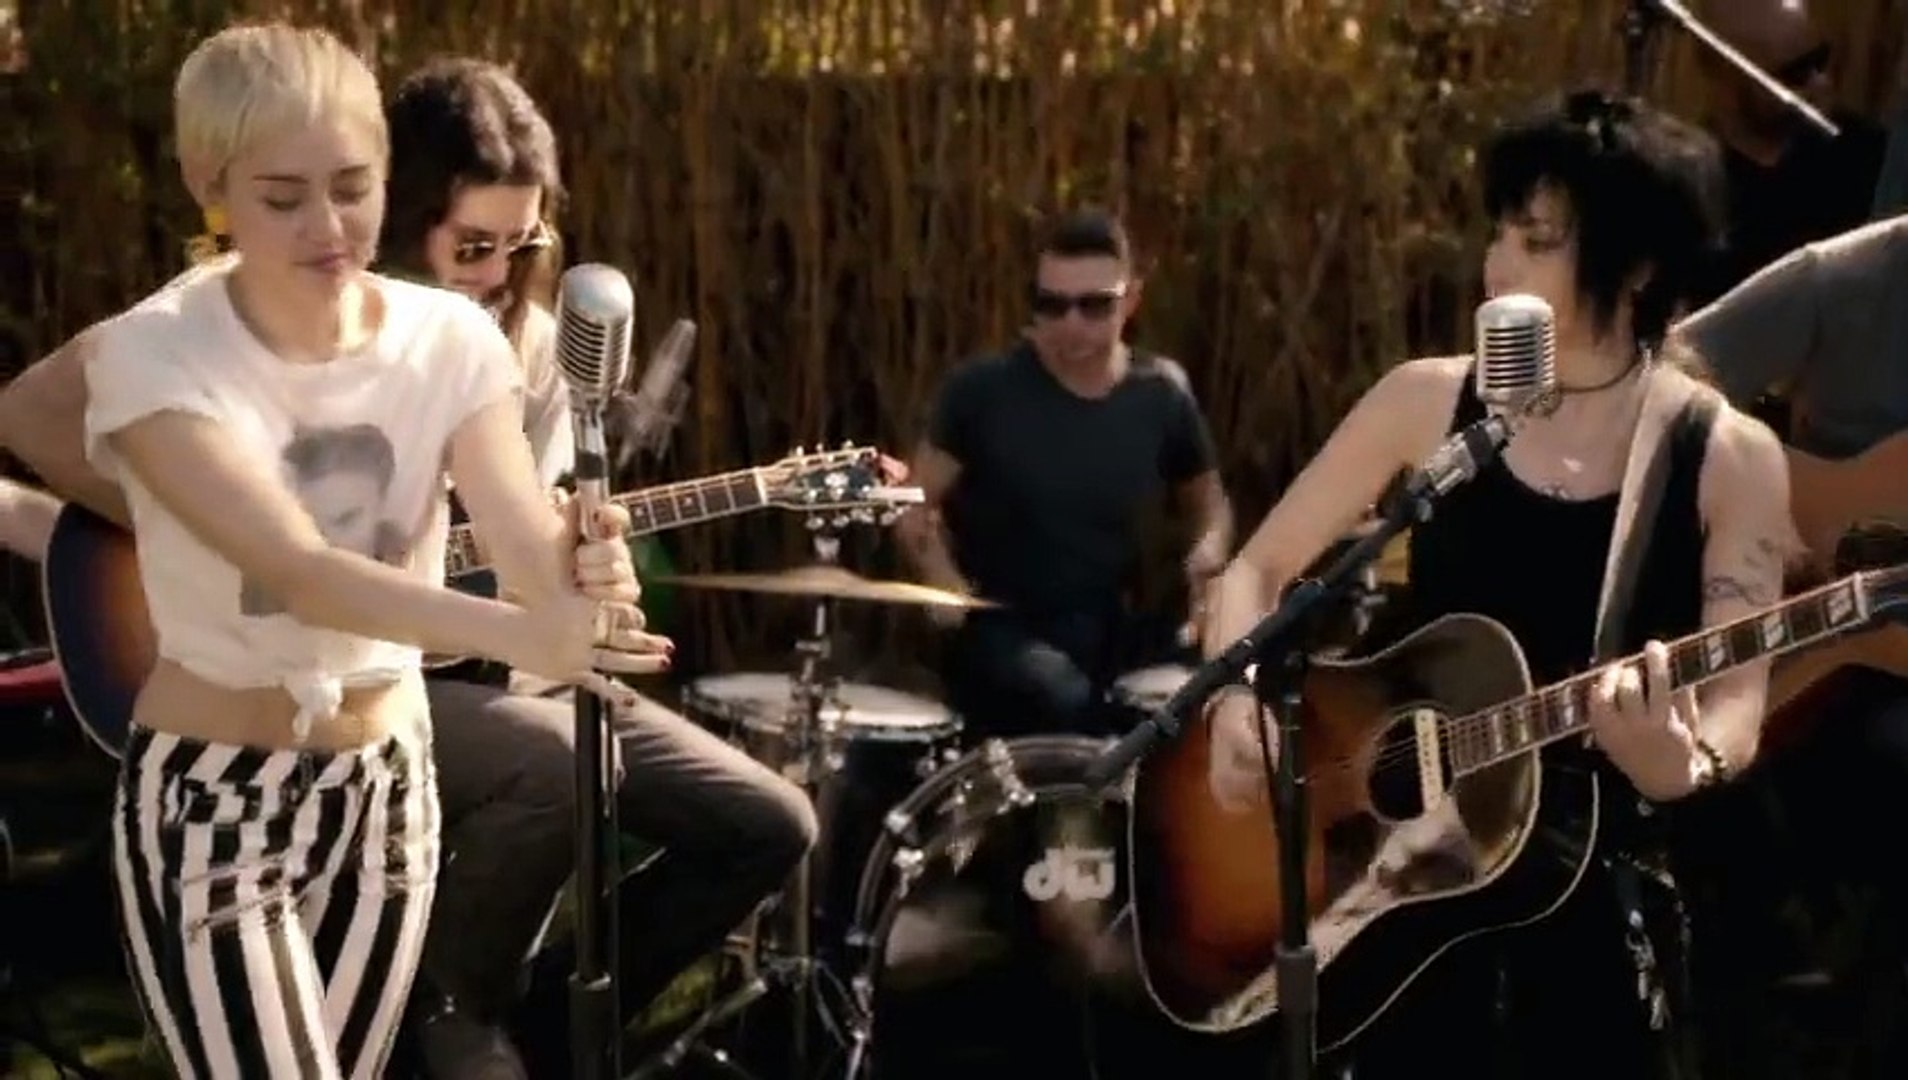 Miley Cyrus Happy Hippie Presents Different Performed By Miley Cyrus Joan Jett Video Dailymotion